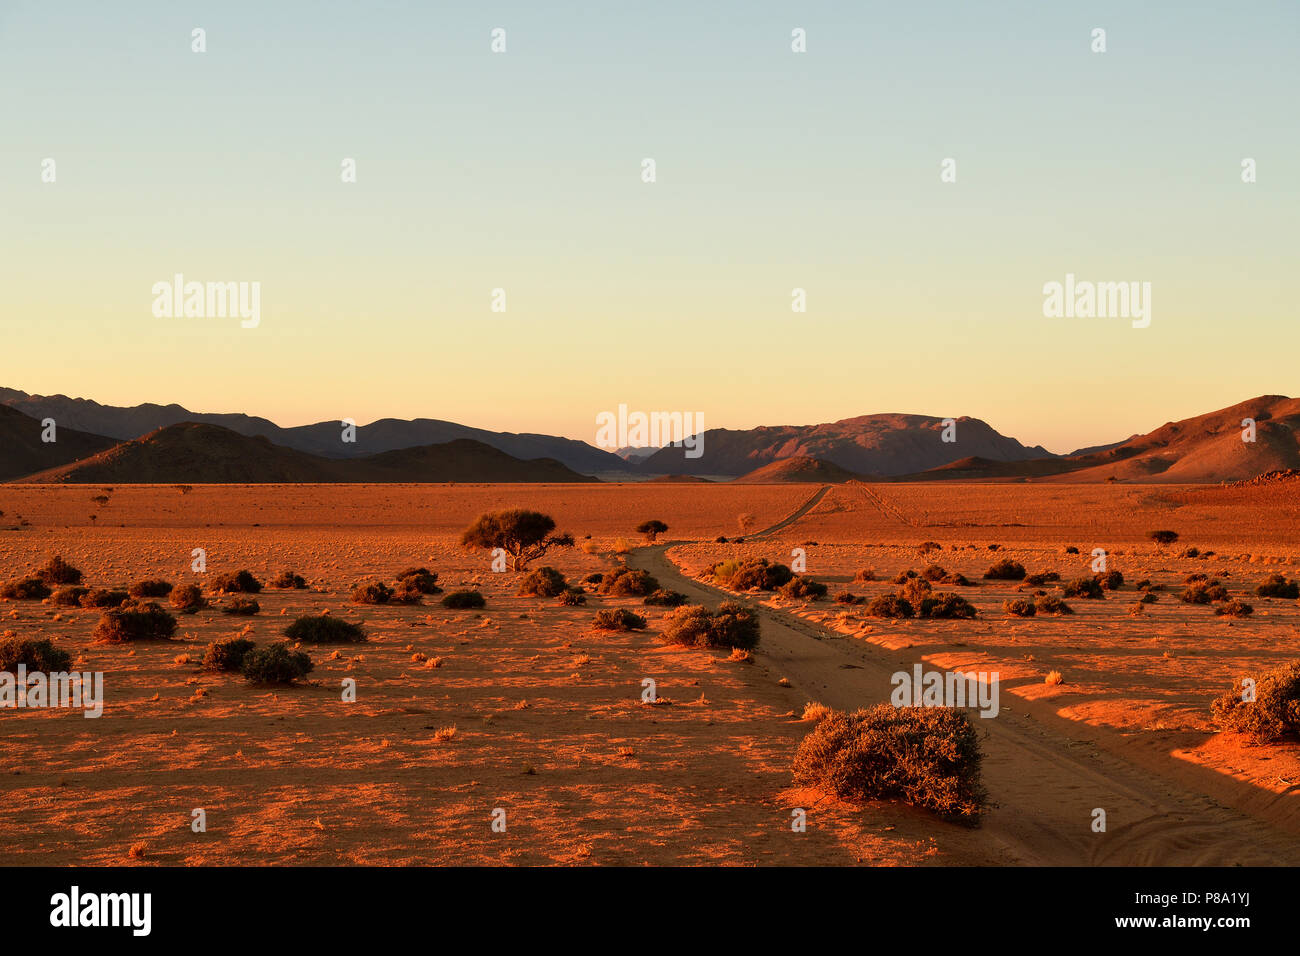 Sand track through the sandy desert, Tiras mountains on the horizon at sunset, Namibia - Stock Image